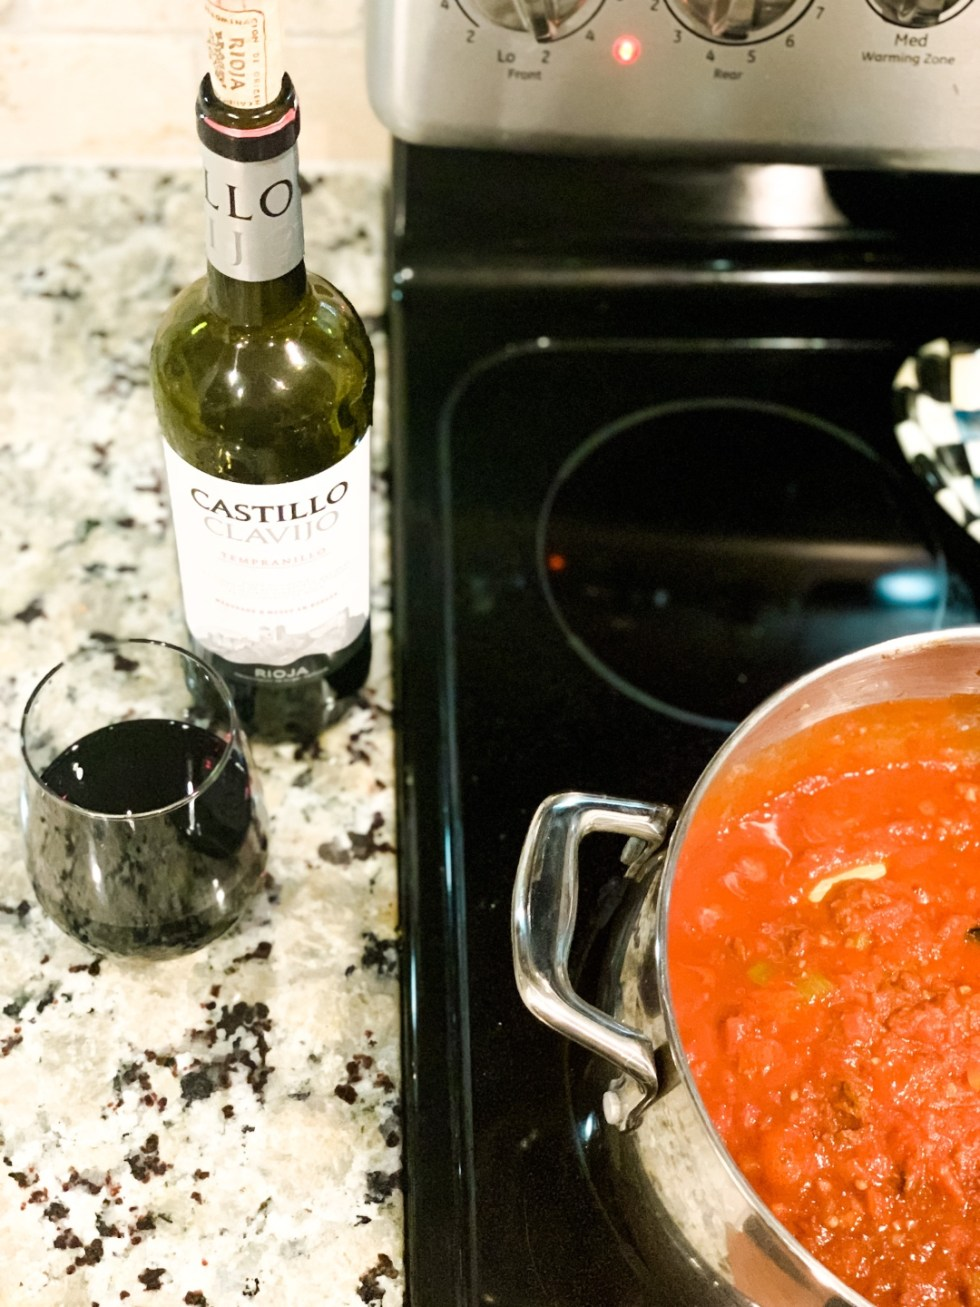 7 Recipes I Have Tried During Quarantine - I'm Fixin' To - @mbg0112 | Easy Recipes for Two by popular North Carolina lifestyle blog, I'm Fixin' To: image of a bottle of red wine rest next to a pot of red meat sauce.